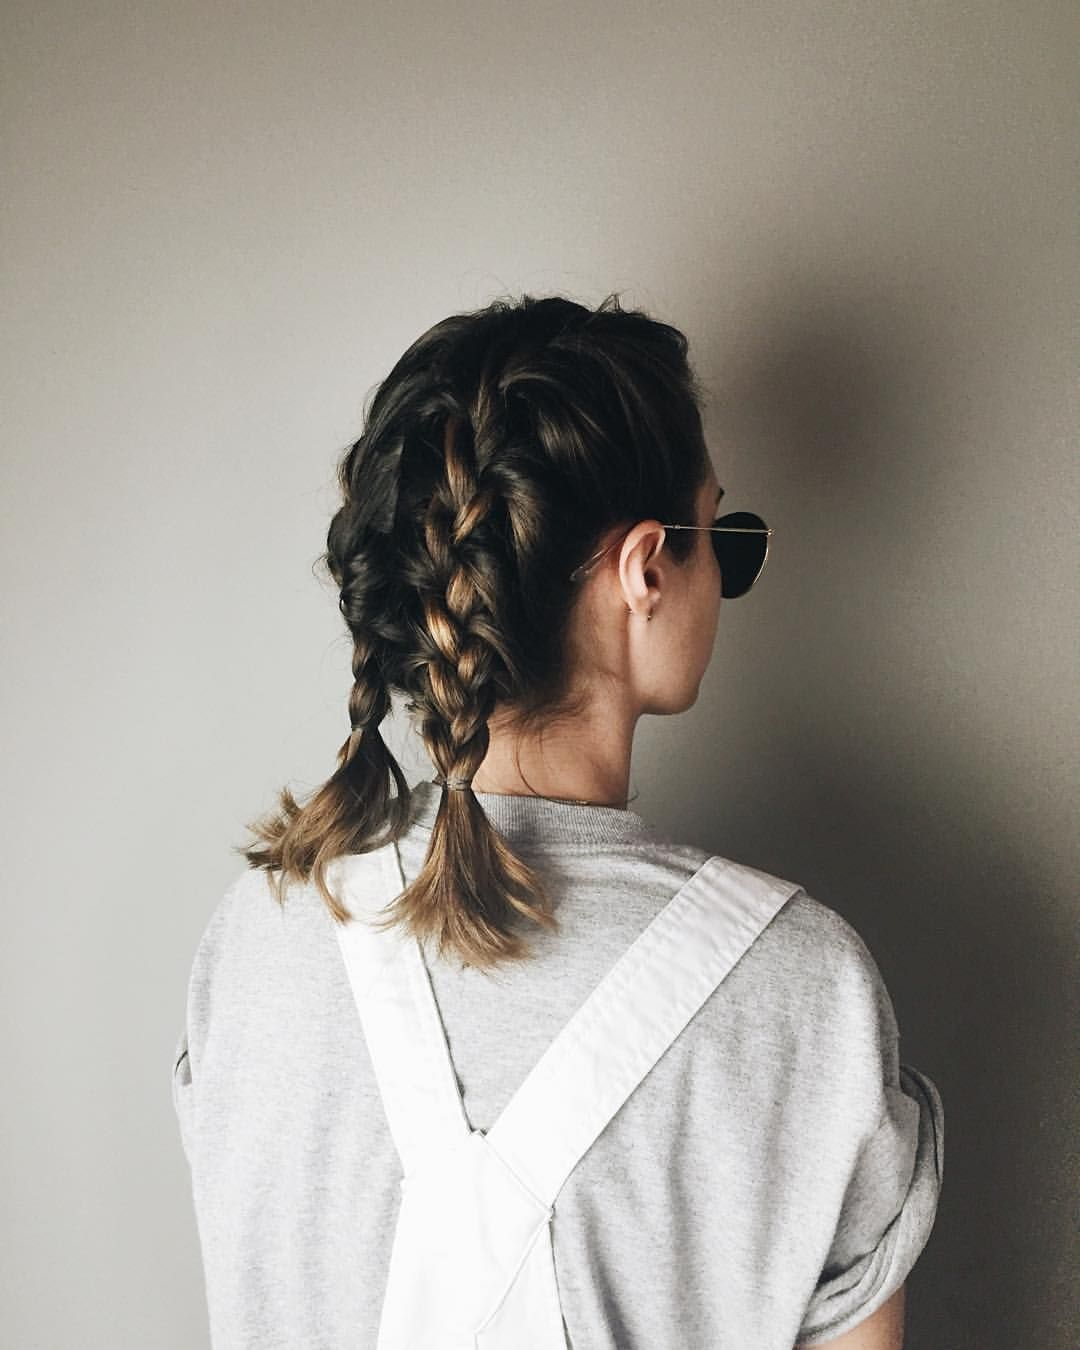 Charotschekpinterest photography pinterest hair style